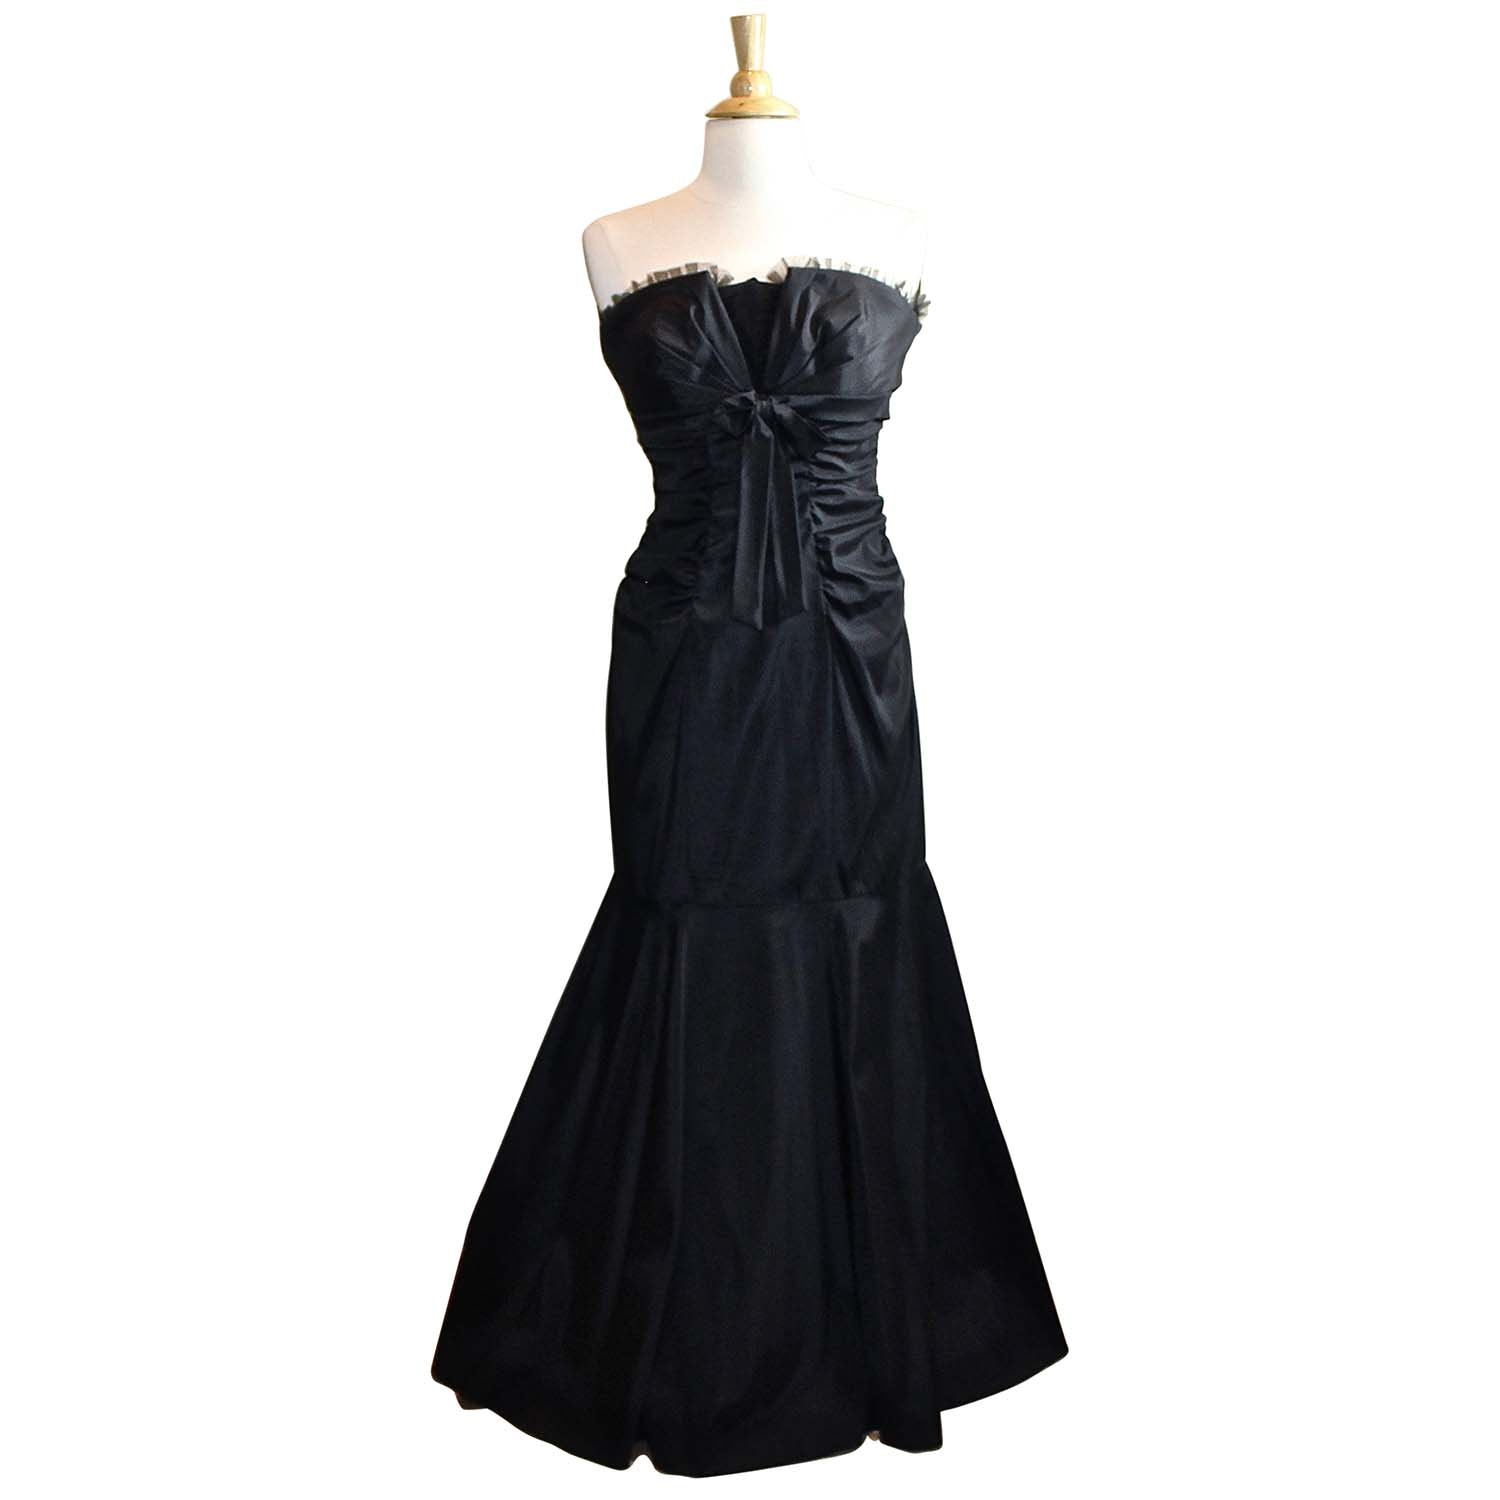 XSCAPE by Joanna Chen Black Strapless Gown